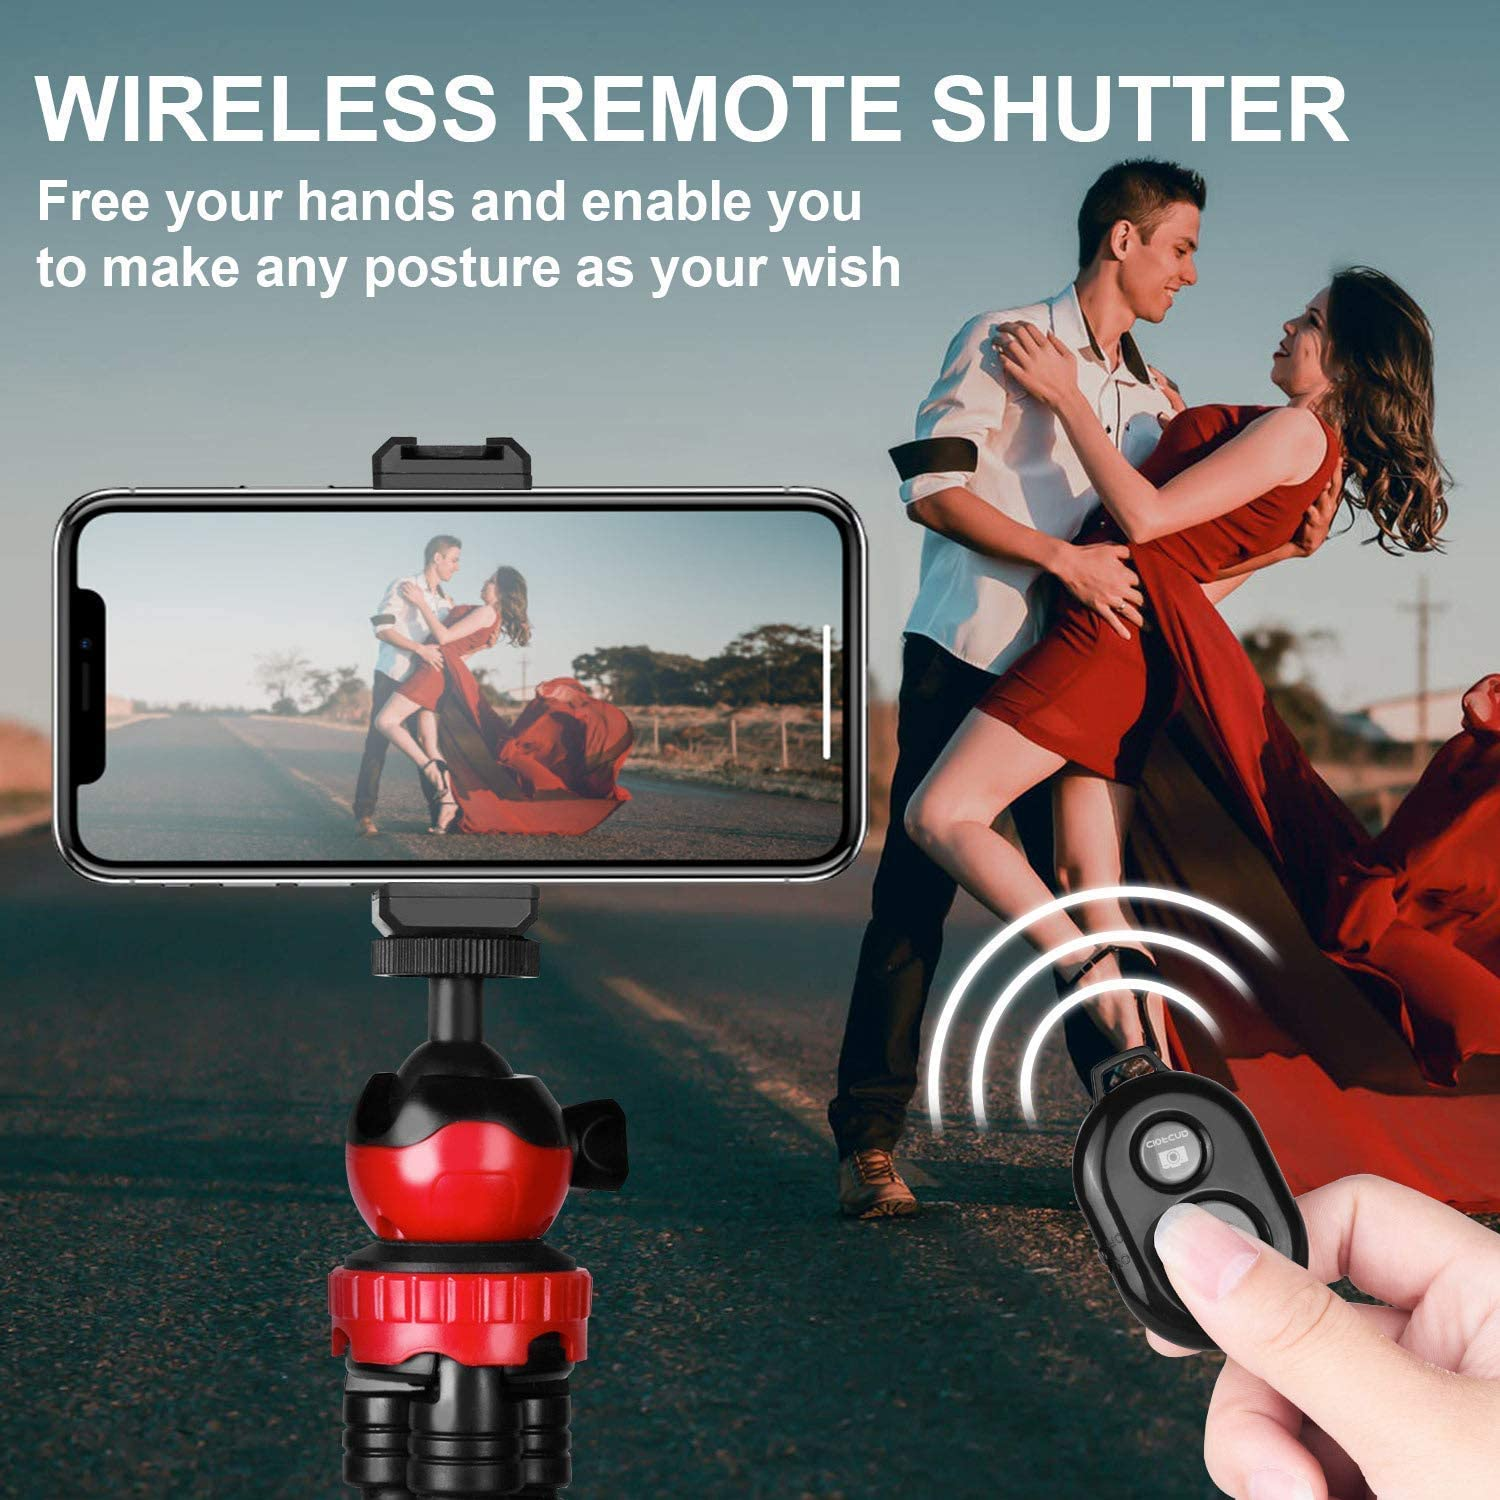 Camera Tripod Flexible Phone Tripod Lightweight Action Camera Tripod DSLR Tripod Octopus Travel Tripod Stand Works on All Smartphones and Cameras